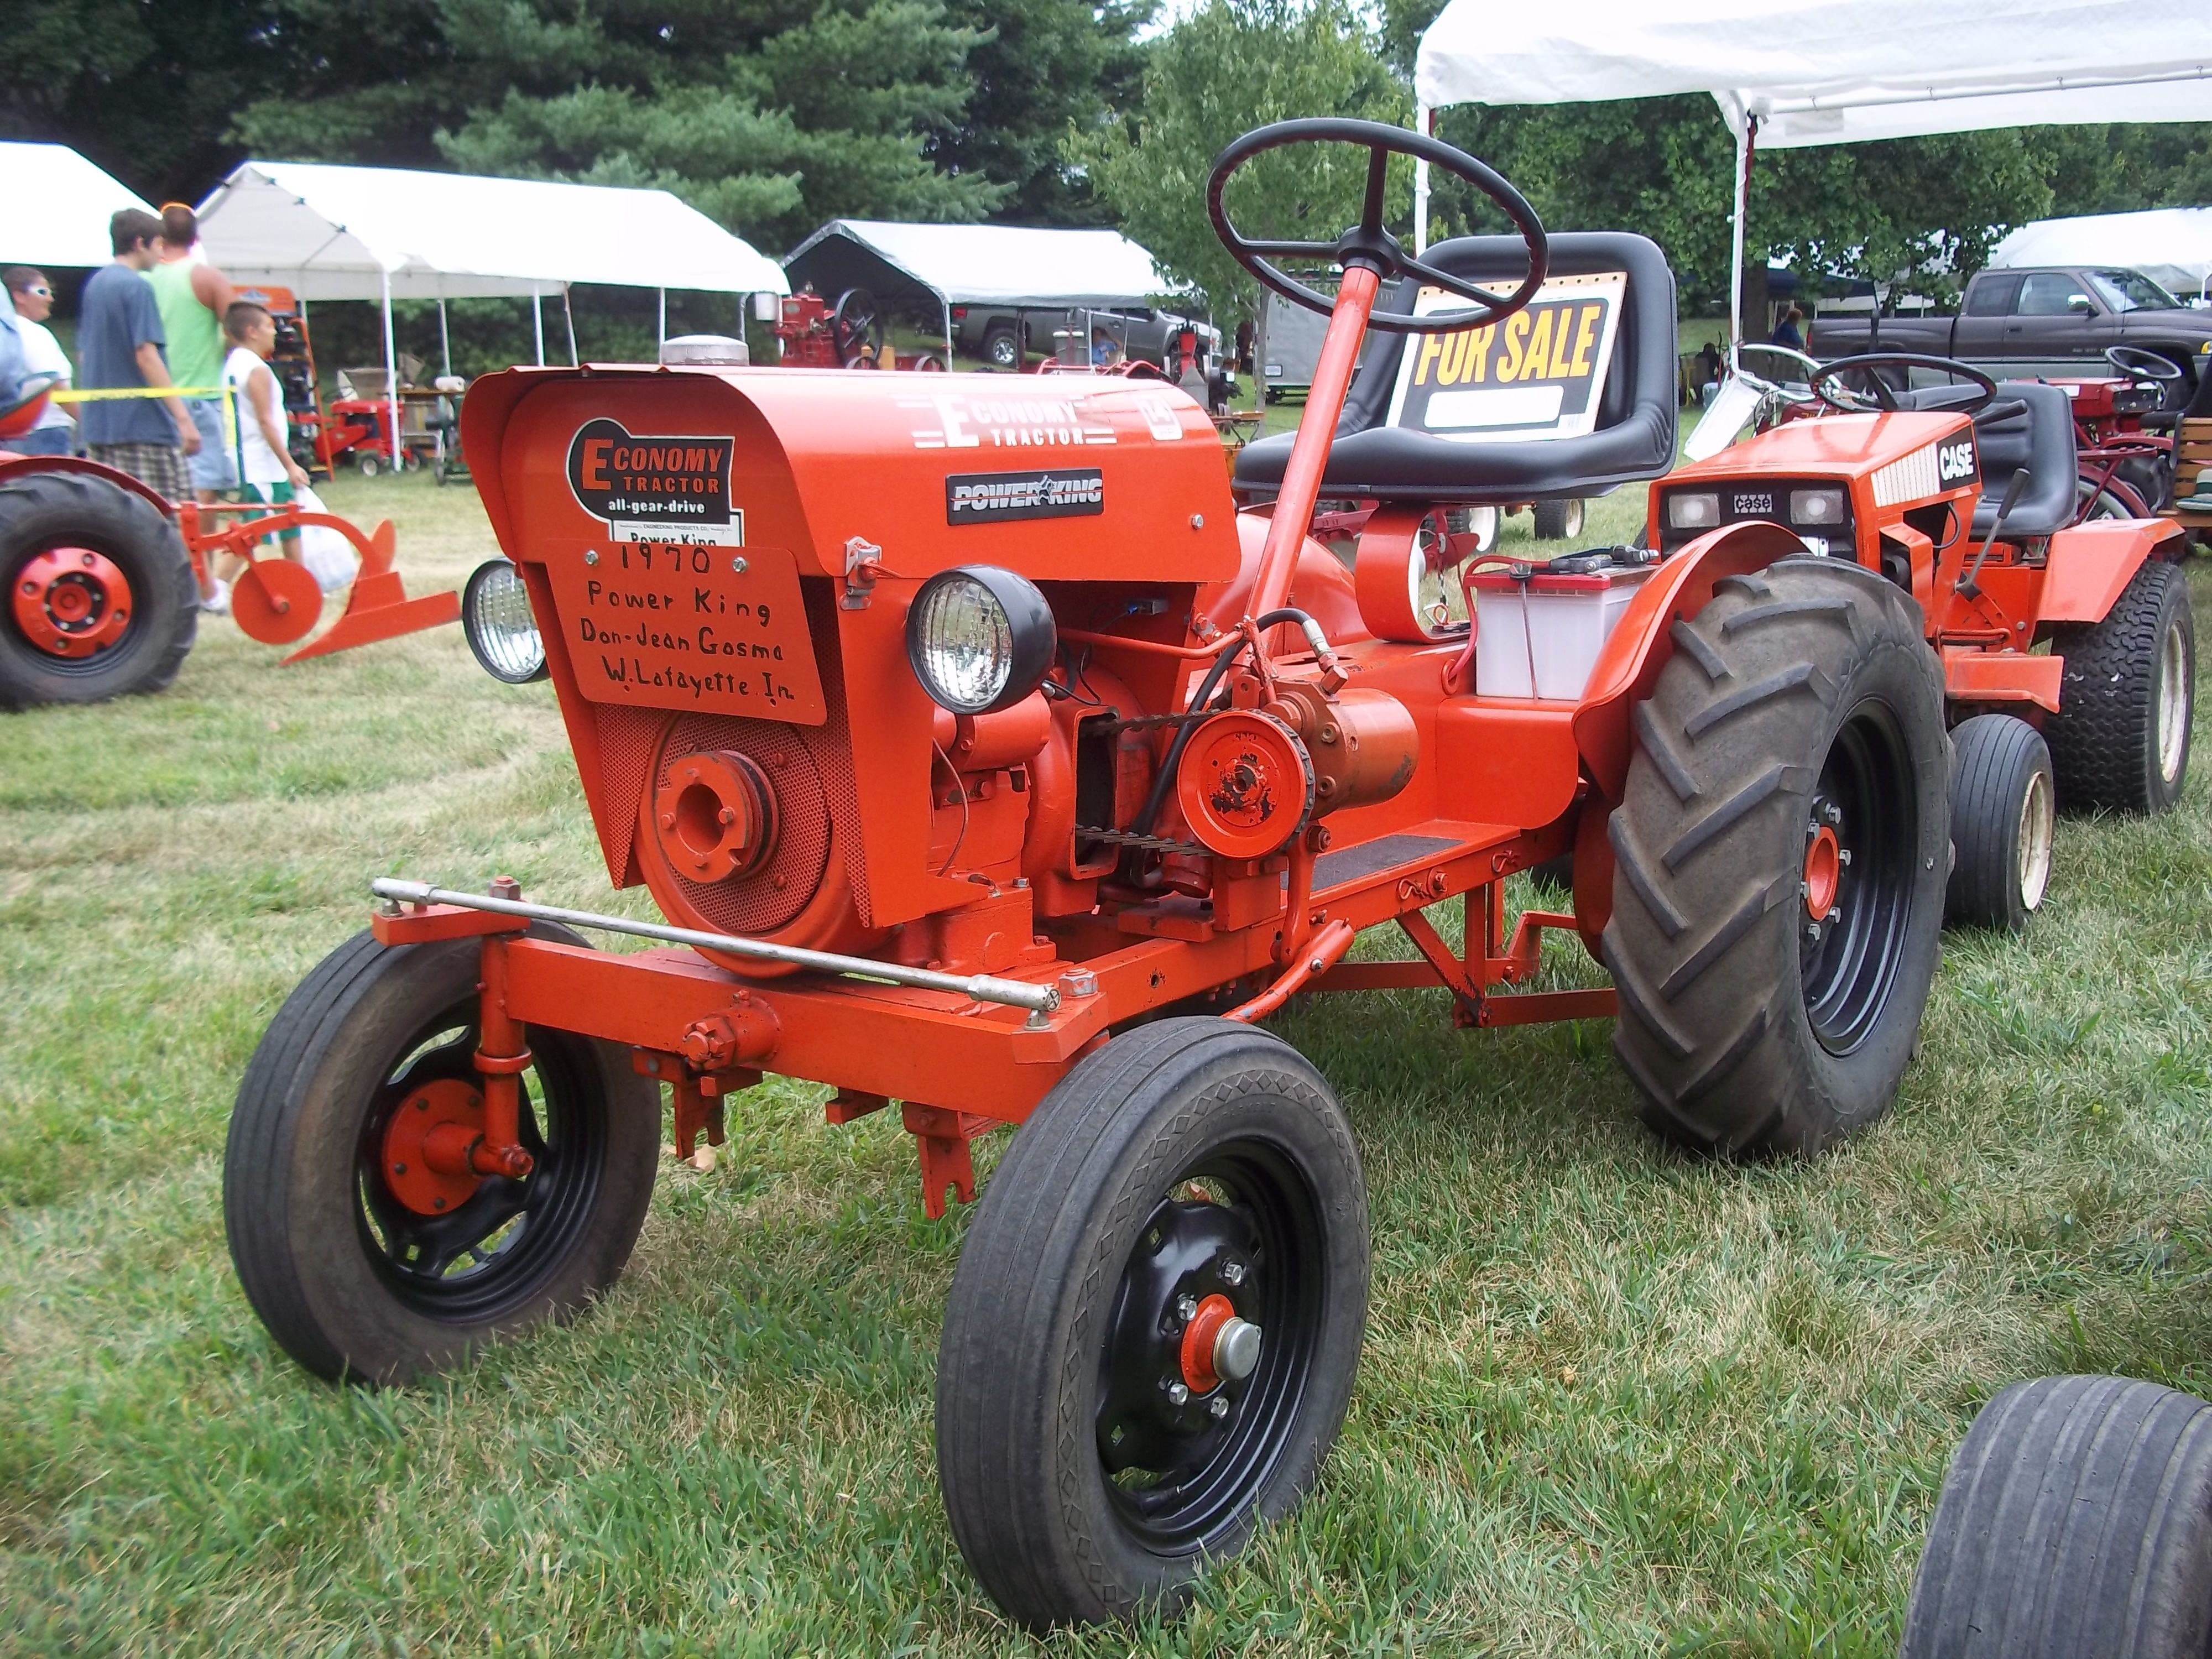 Wiring Diagram For A 3910 Ford Tractor Will Be Power King 1614 Parts Manual 2000 Diesel